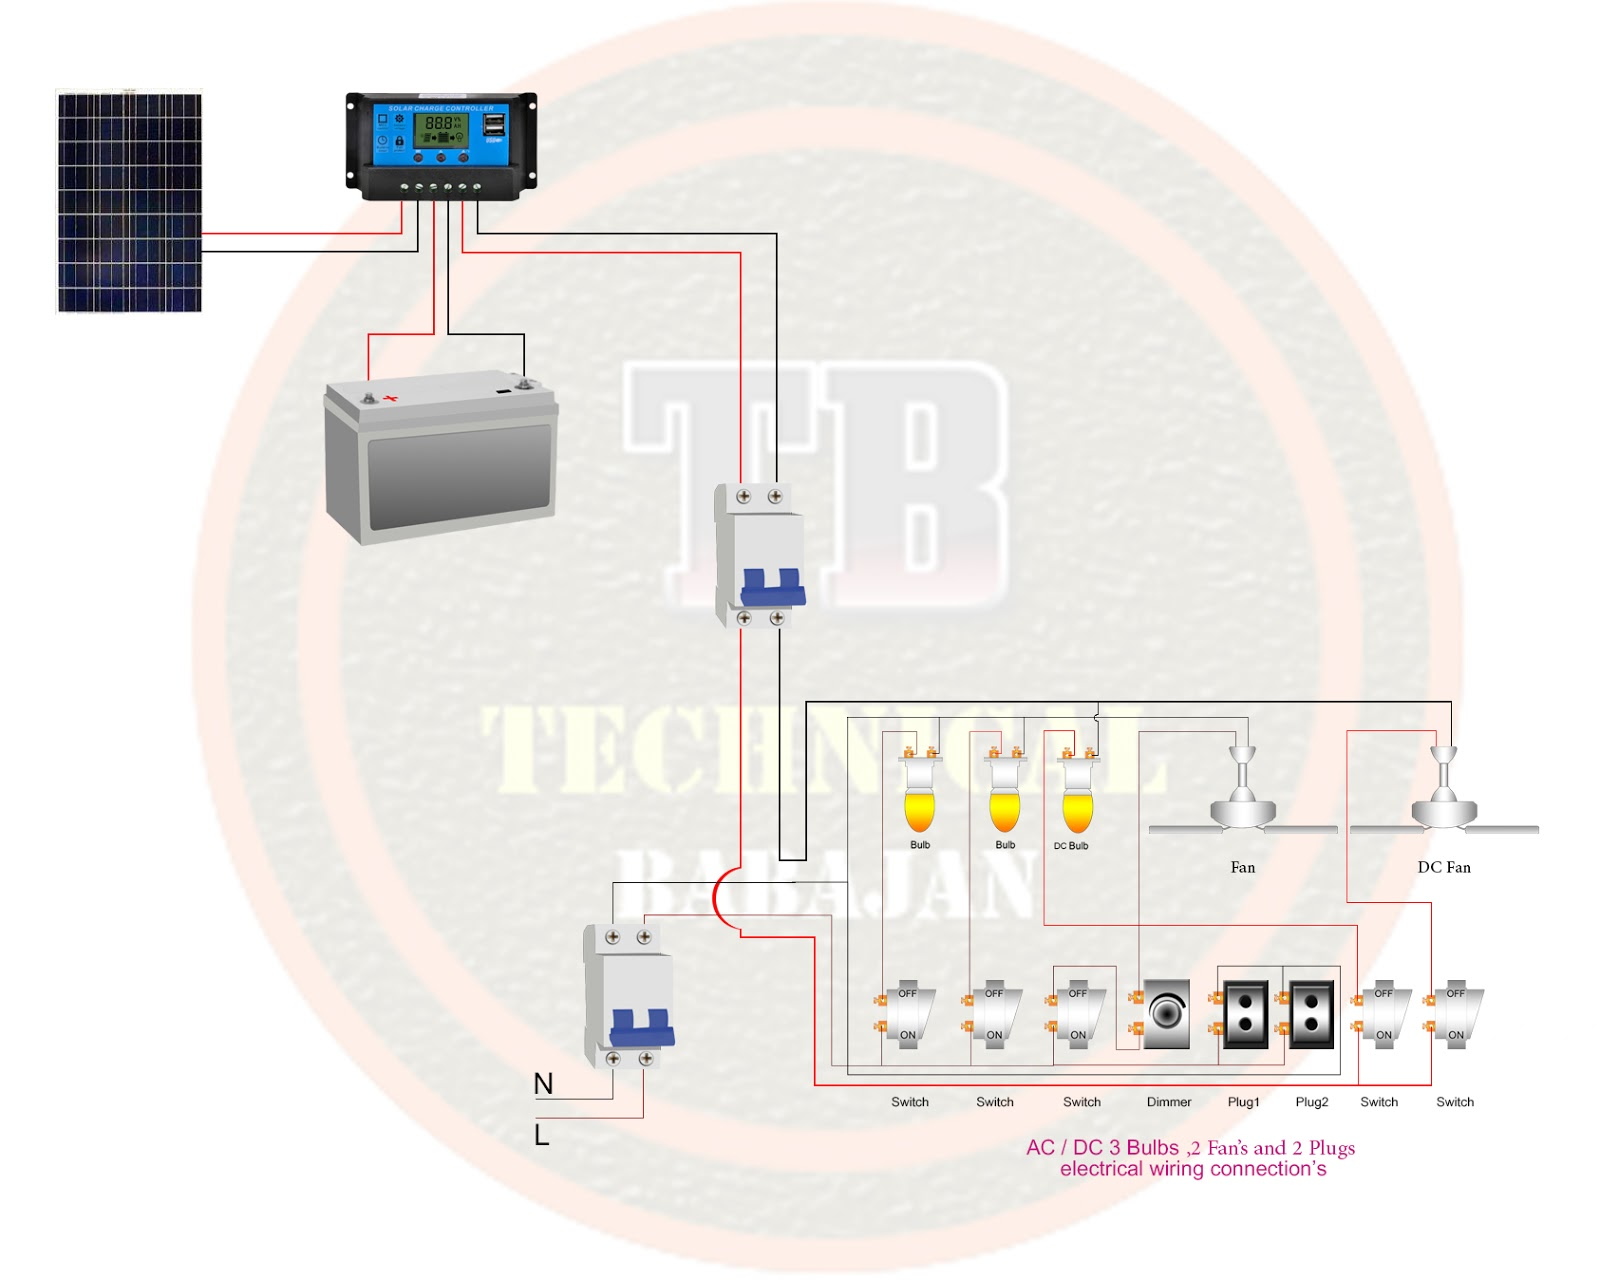 hight resolution of ac dc electrical wiring diagram